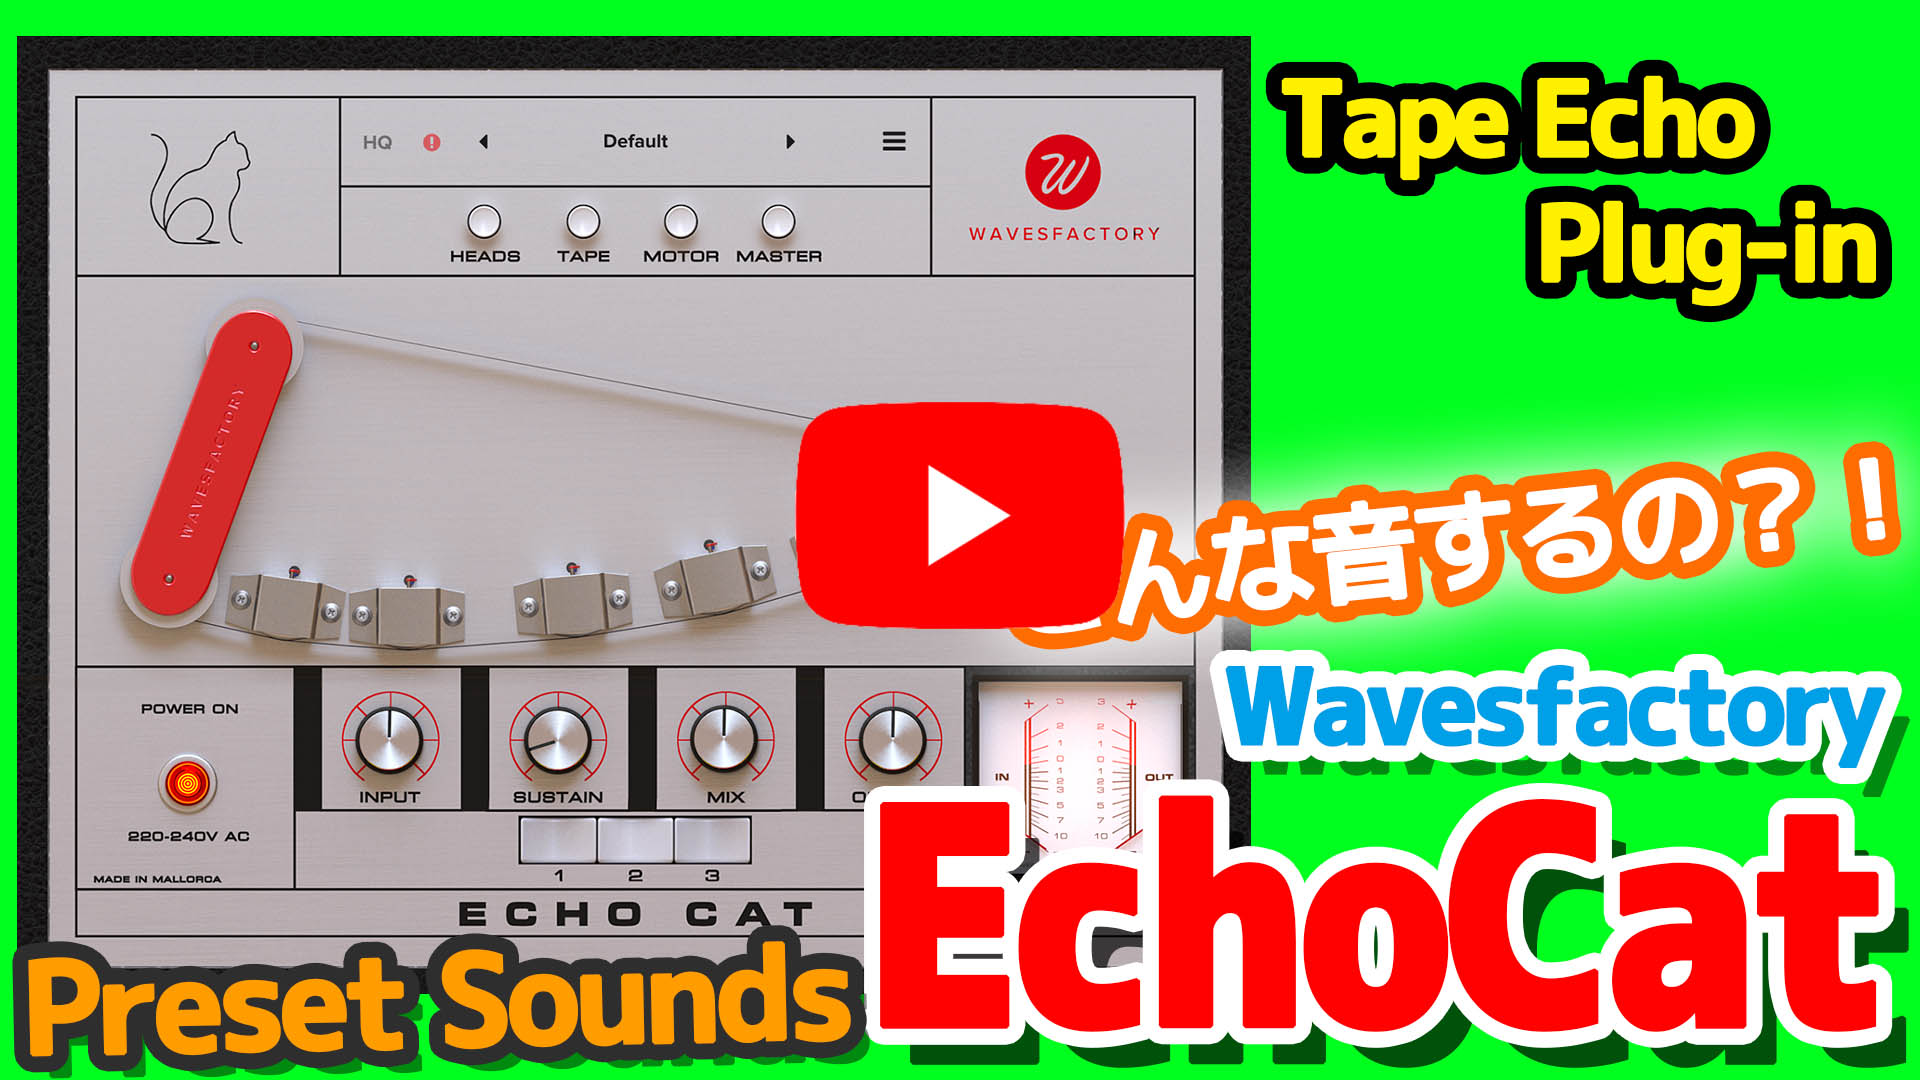 Wavesfactory Echo Cat Preset Sounds - YouTubeボタン付き